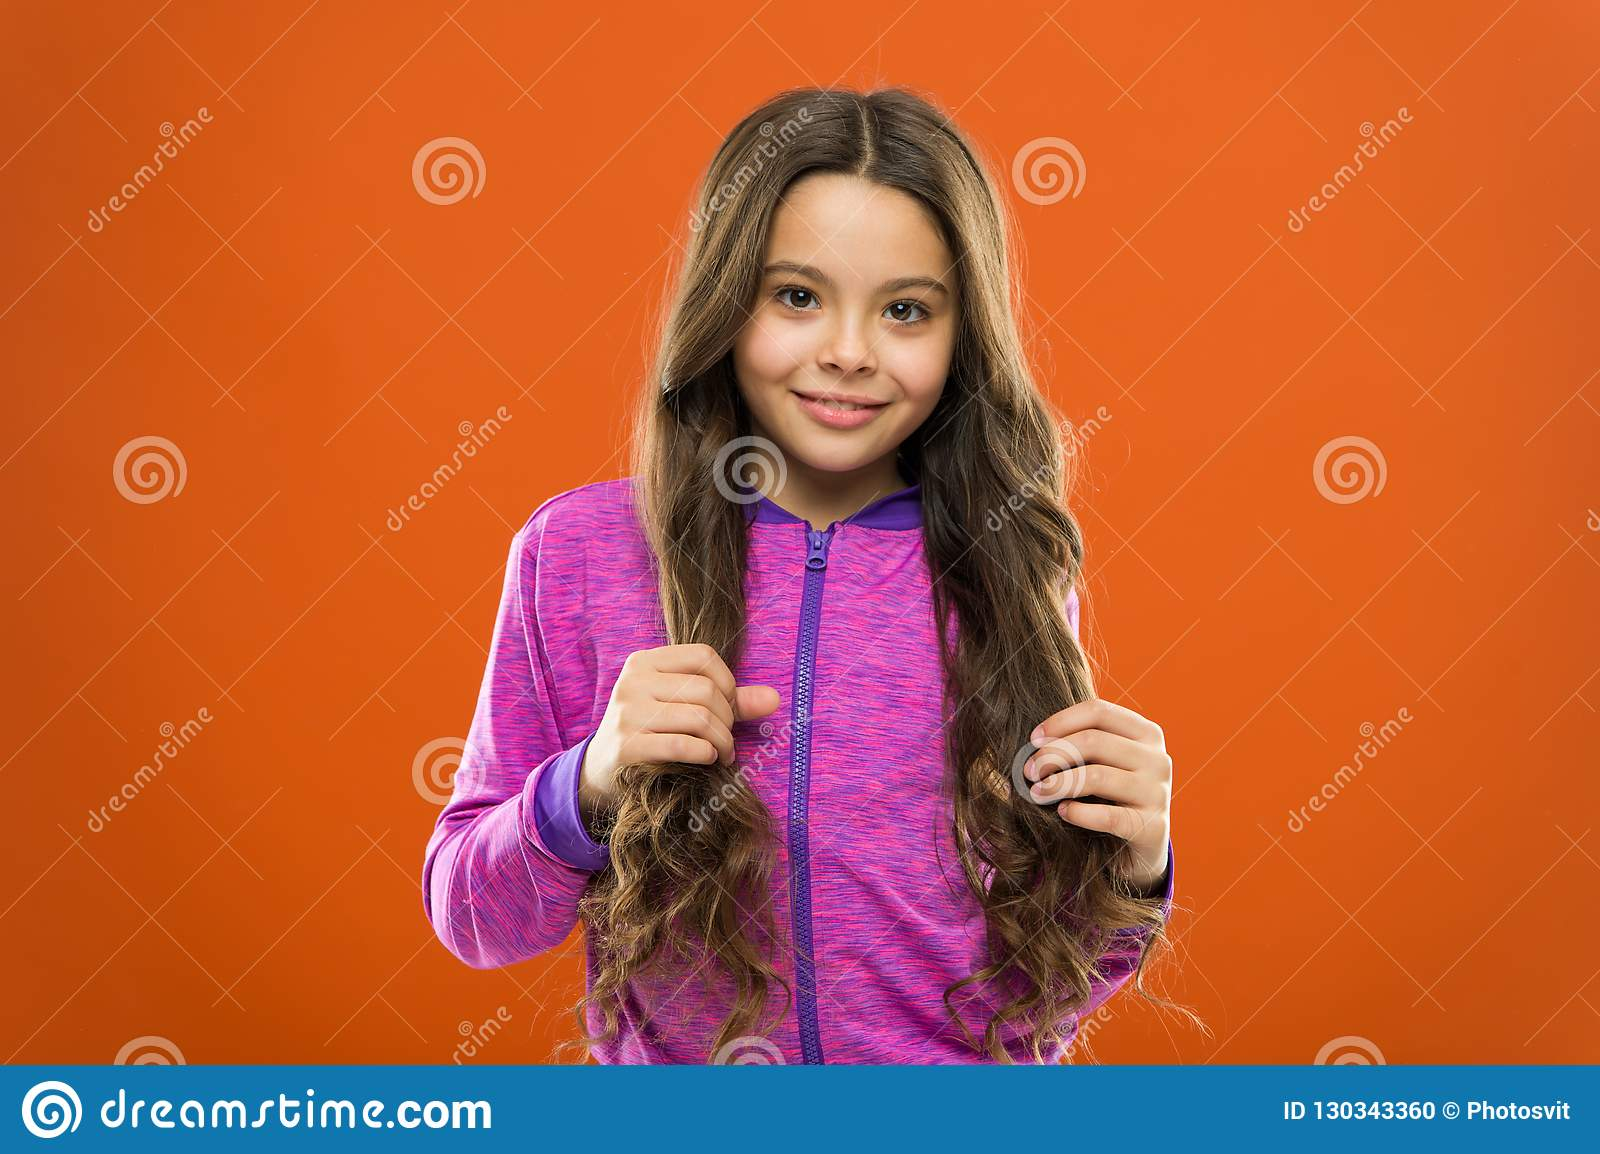 Teaching child healthy hair care habits. Strong hair concept. Kid girl long healthy shiny hair. Main thing is keeping it